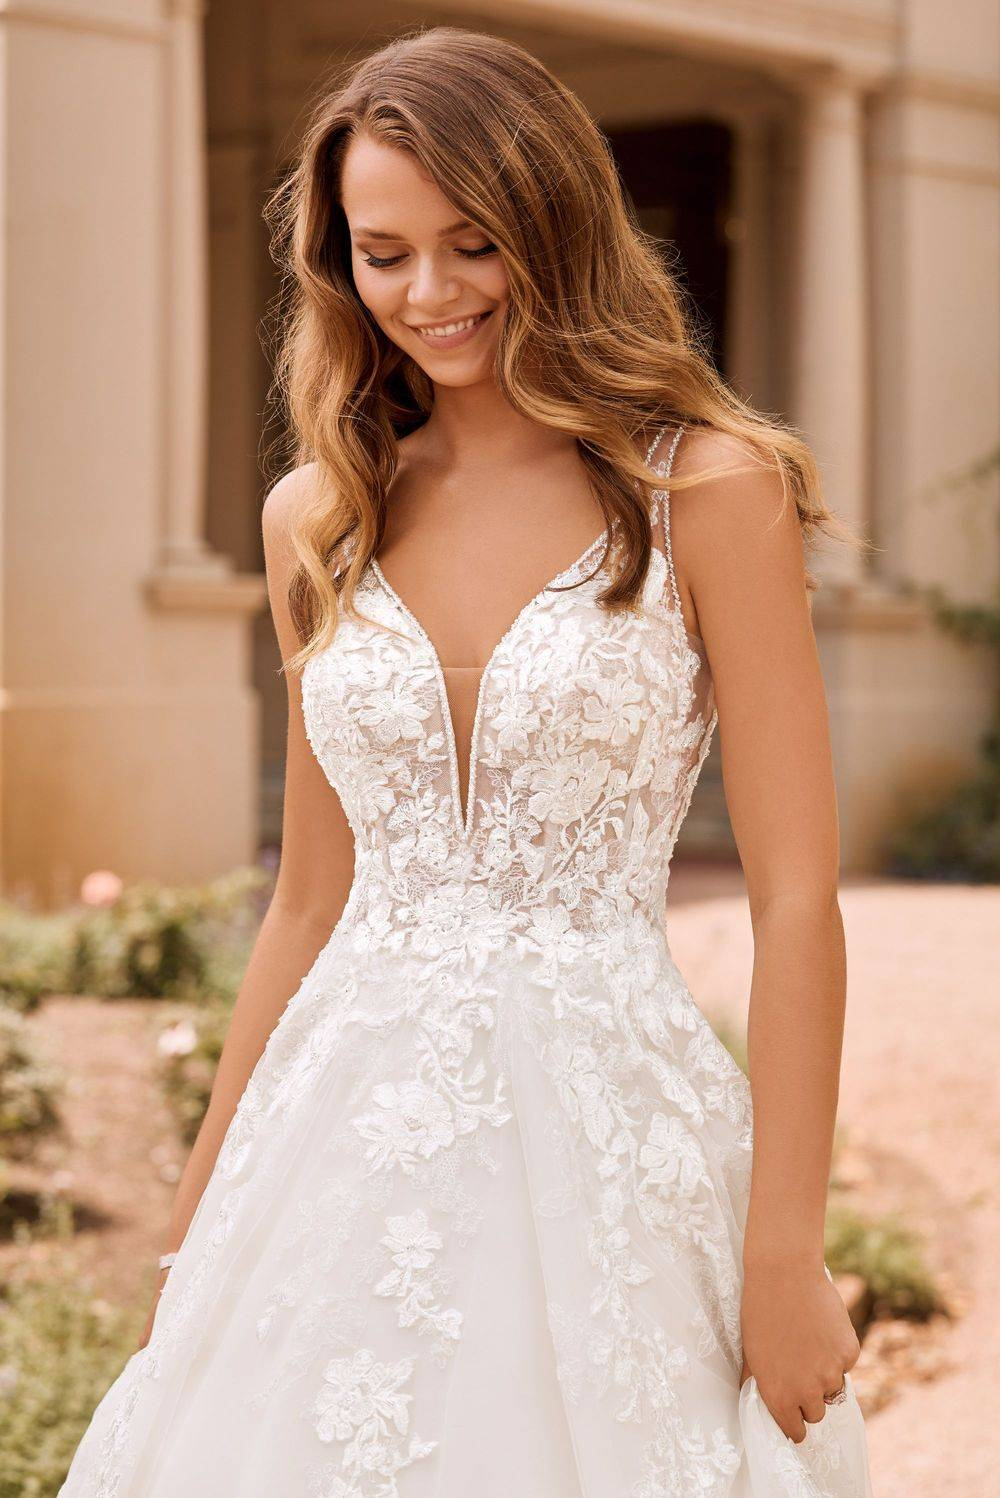 boho wedding dress with lace, plunged neckline, boho a-line wedding dress in rochester kent